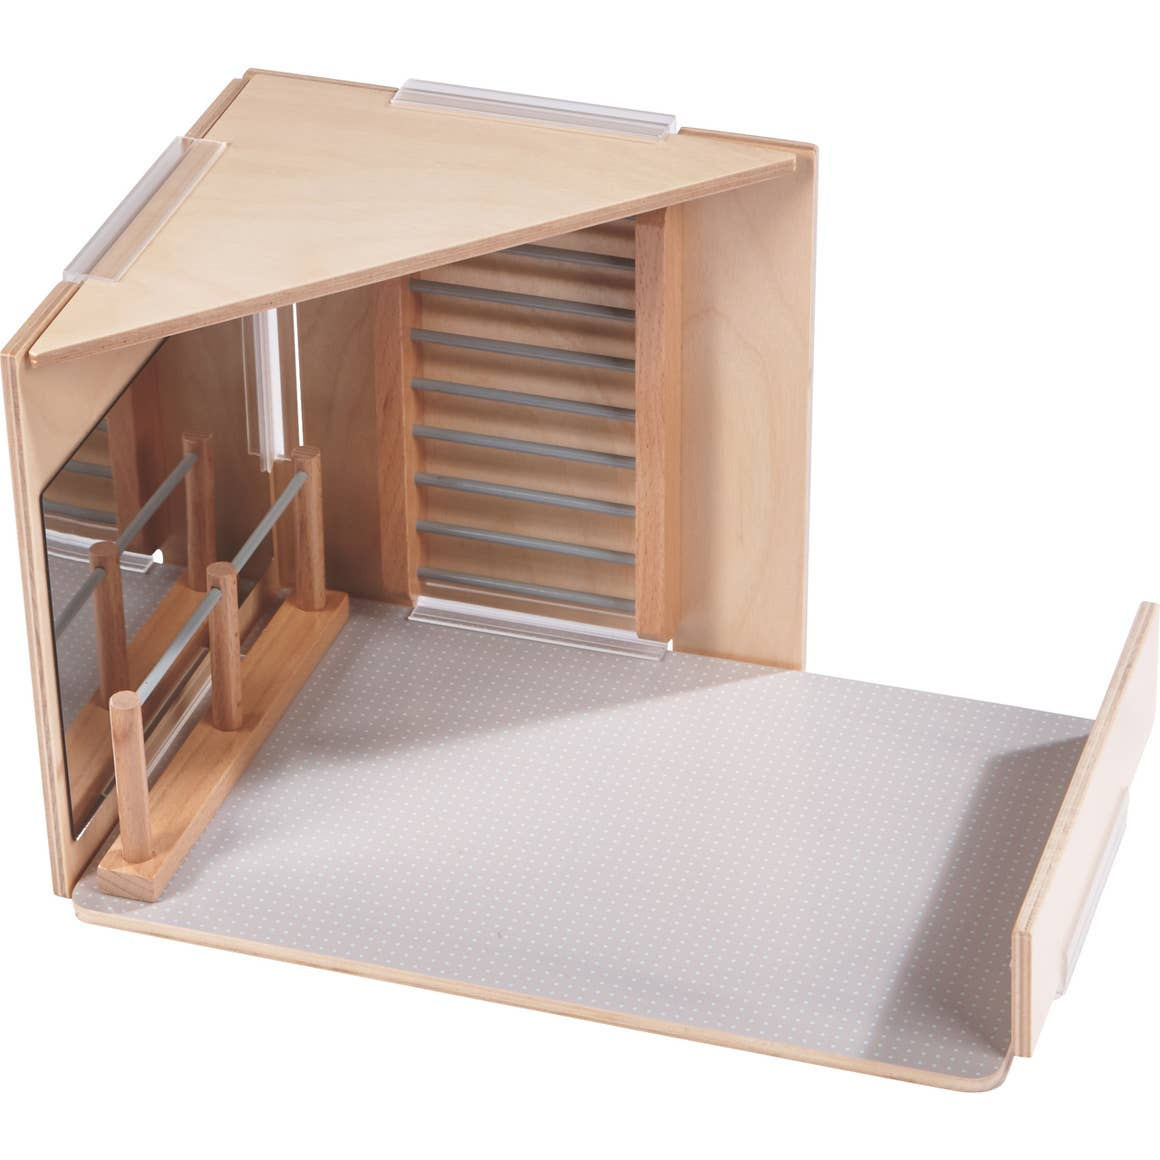 Haba Gym and Ballet Studio Dollhouse & Dolls